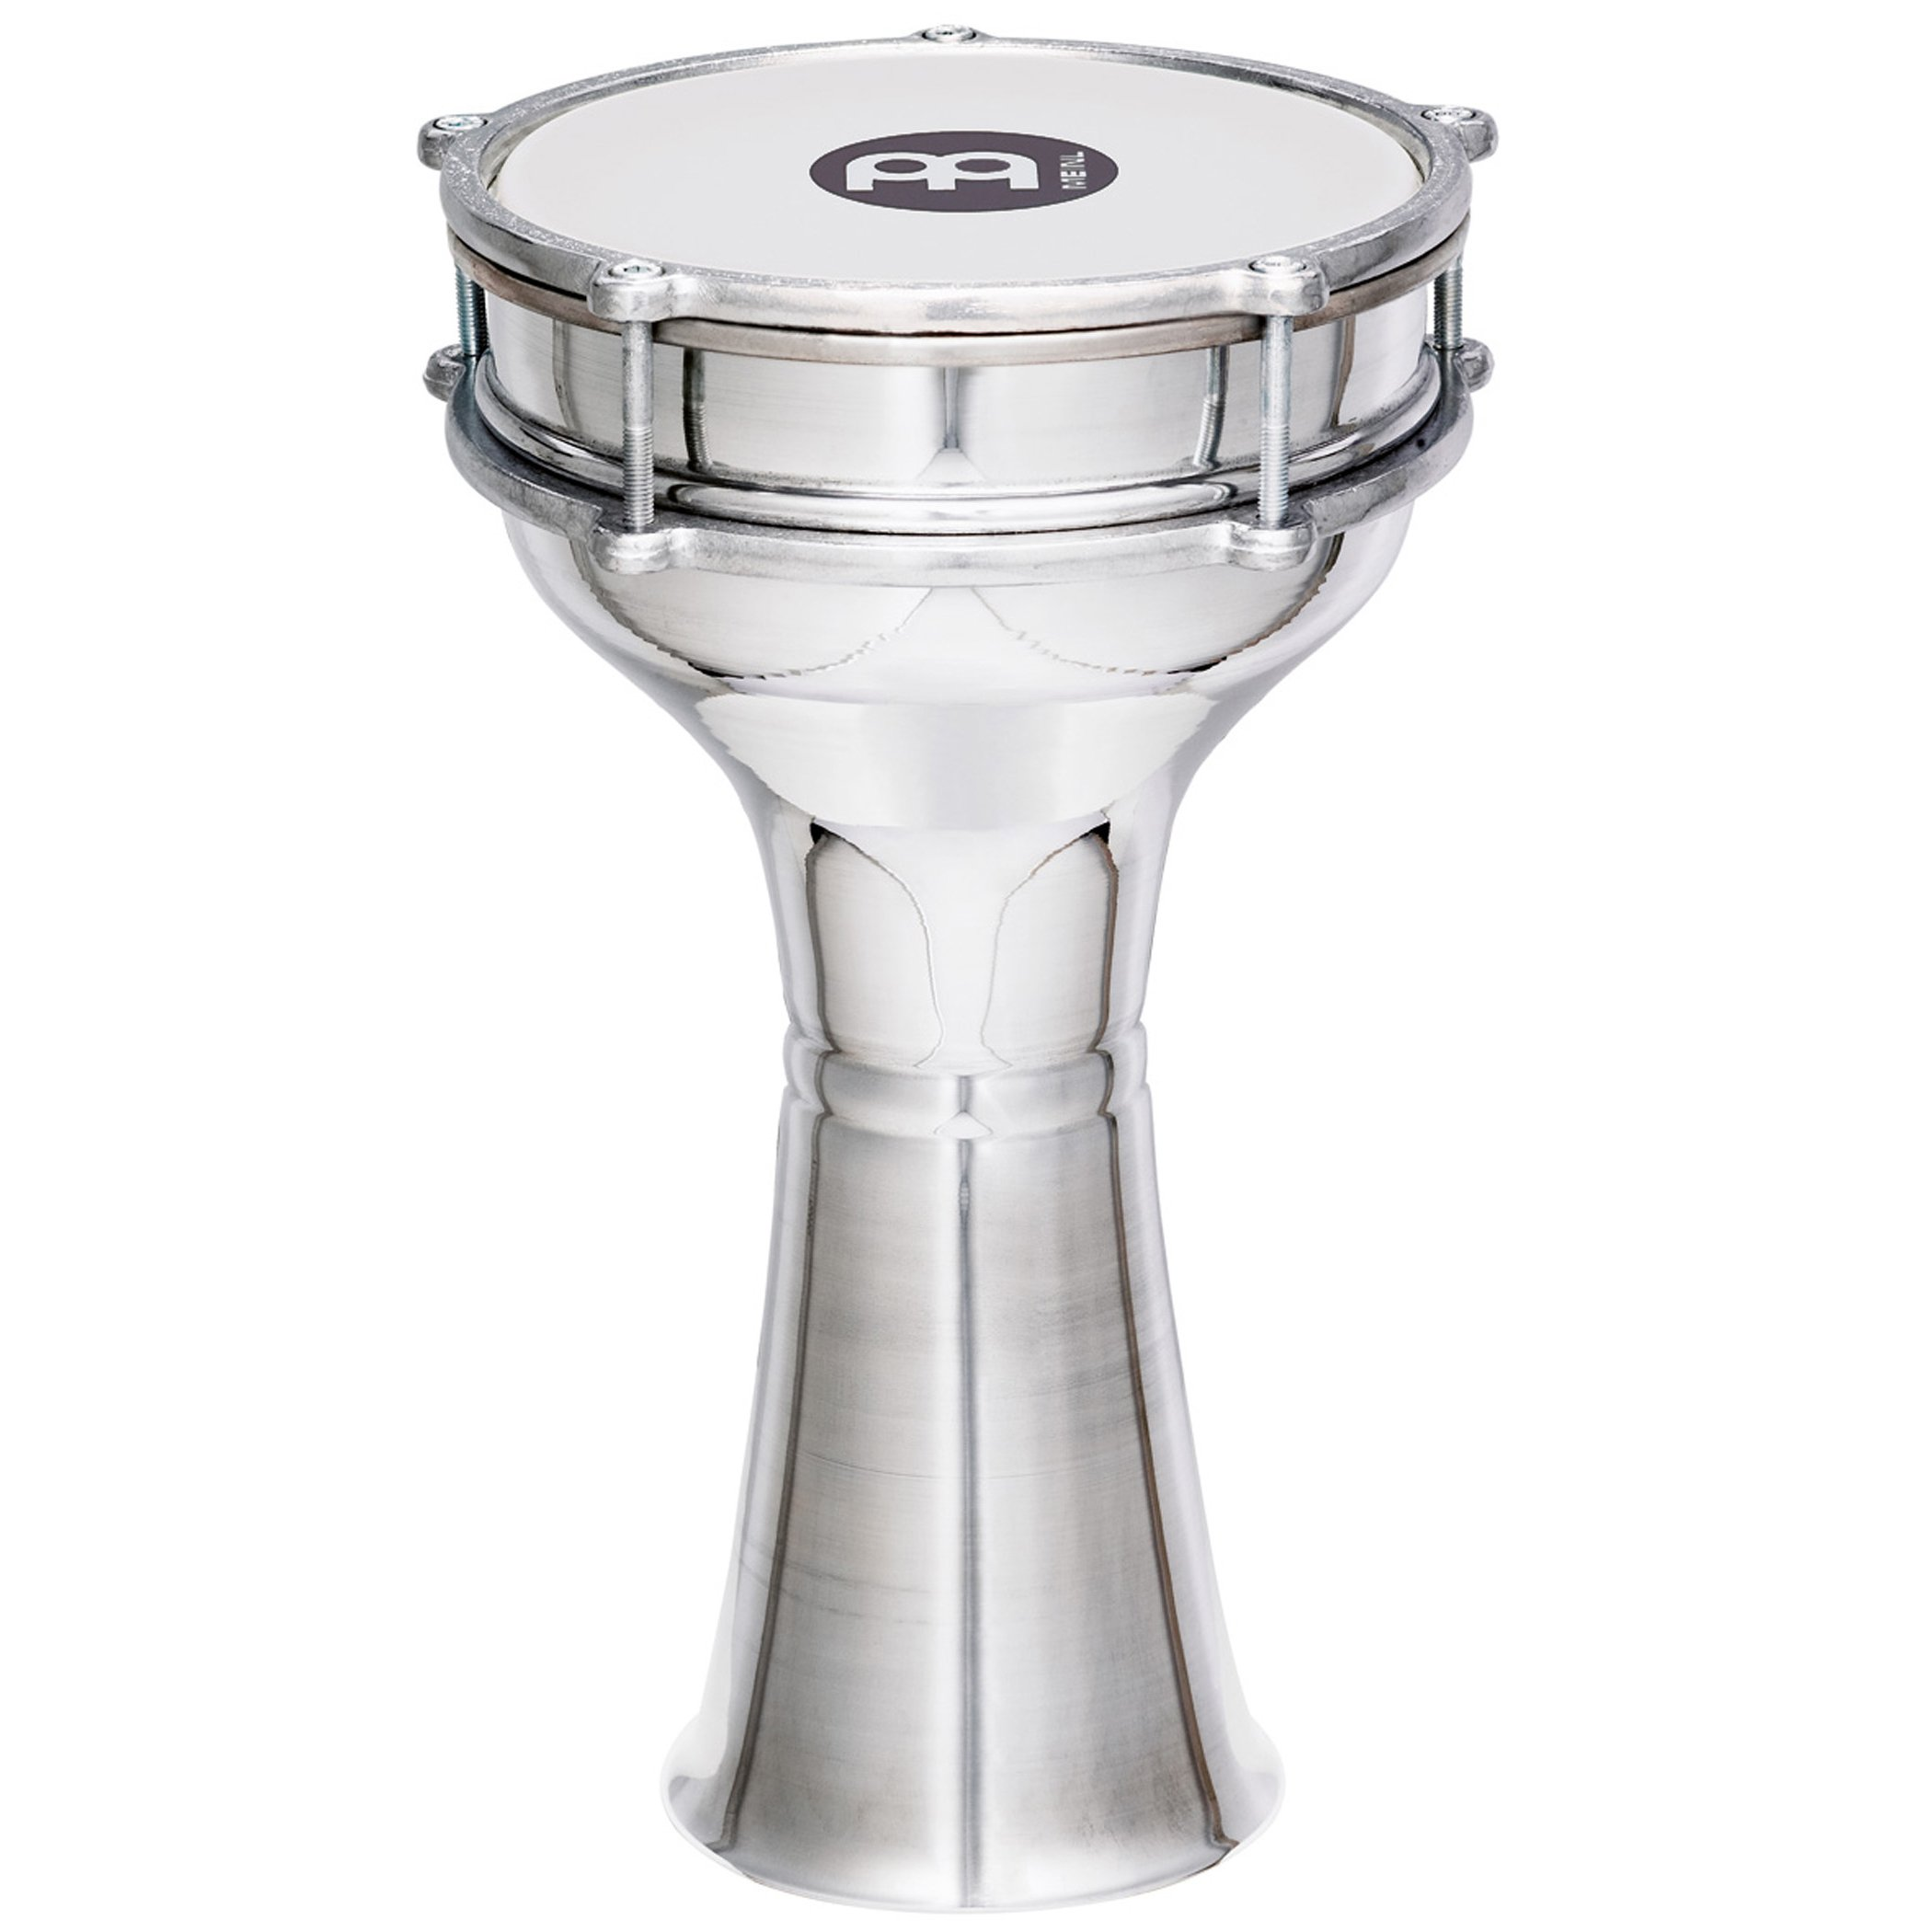 Meinl Percussion Mini Darbuka with Aluminum Body - MADE IN TURKEY - 7 1/4'' Tunable Synthetic Head, 2-YEAR WARRANTY (HE-103) by Meinl Percussion